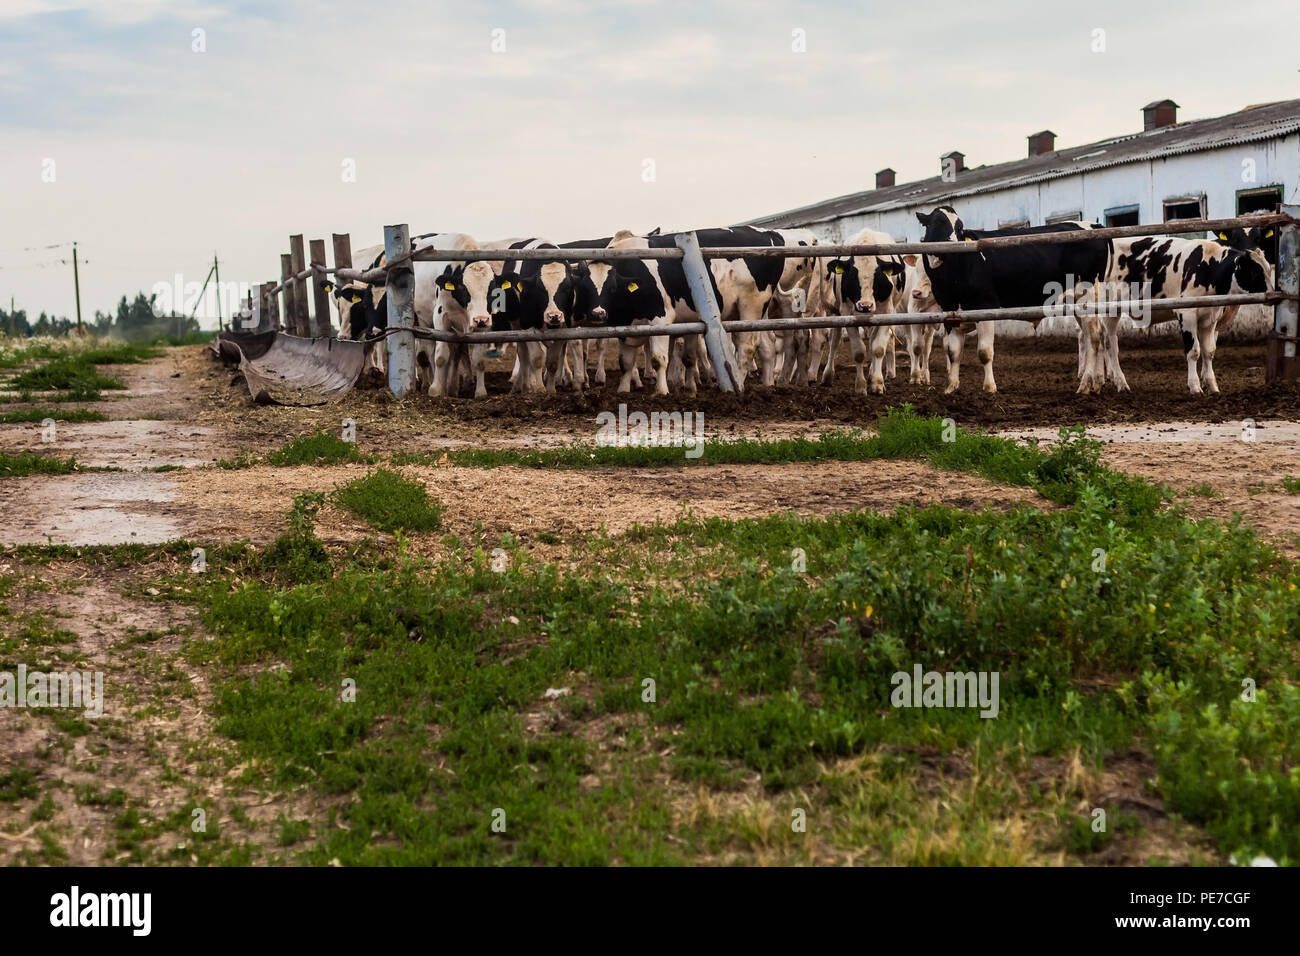 Farm for breeding bull-calves in pen in summer. - Stock Image